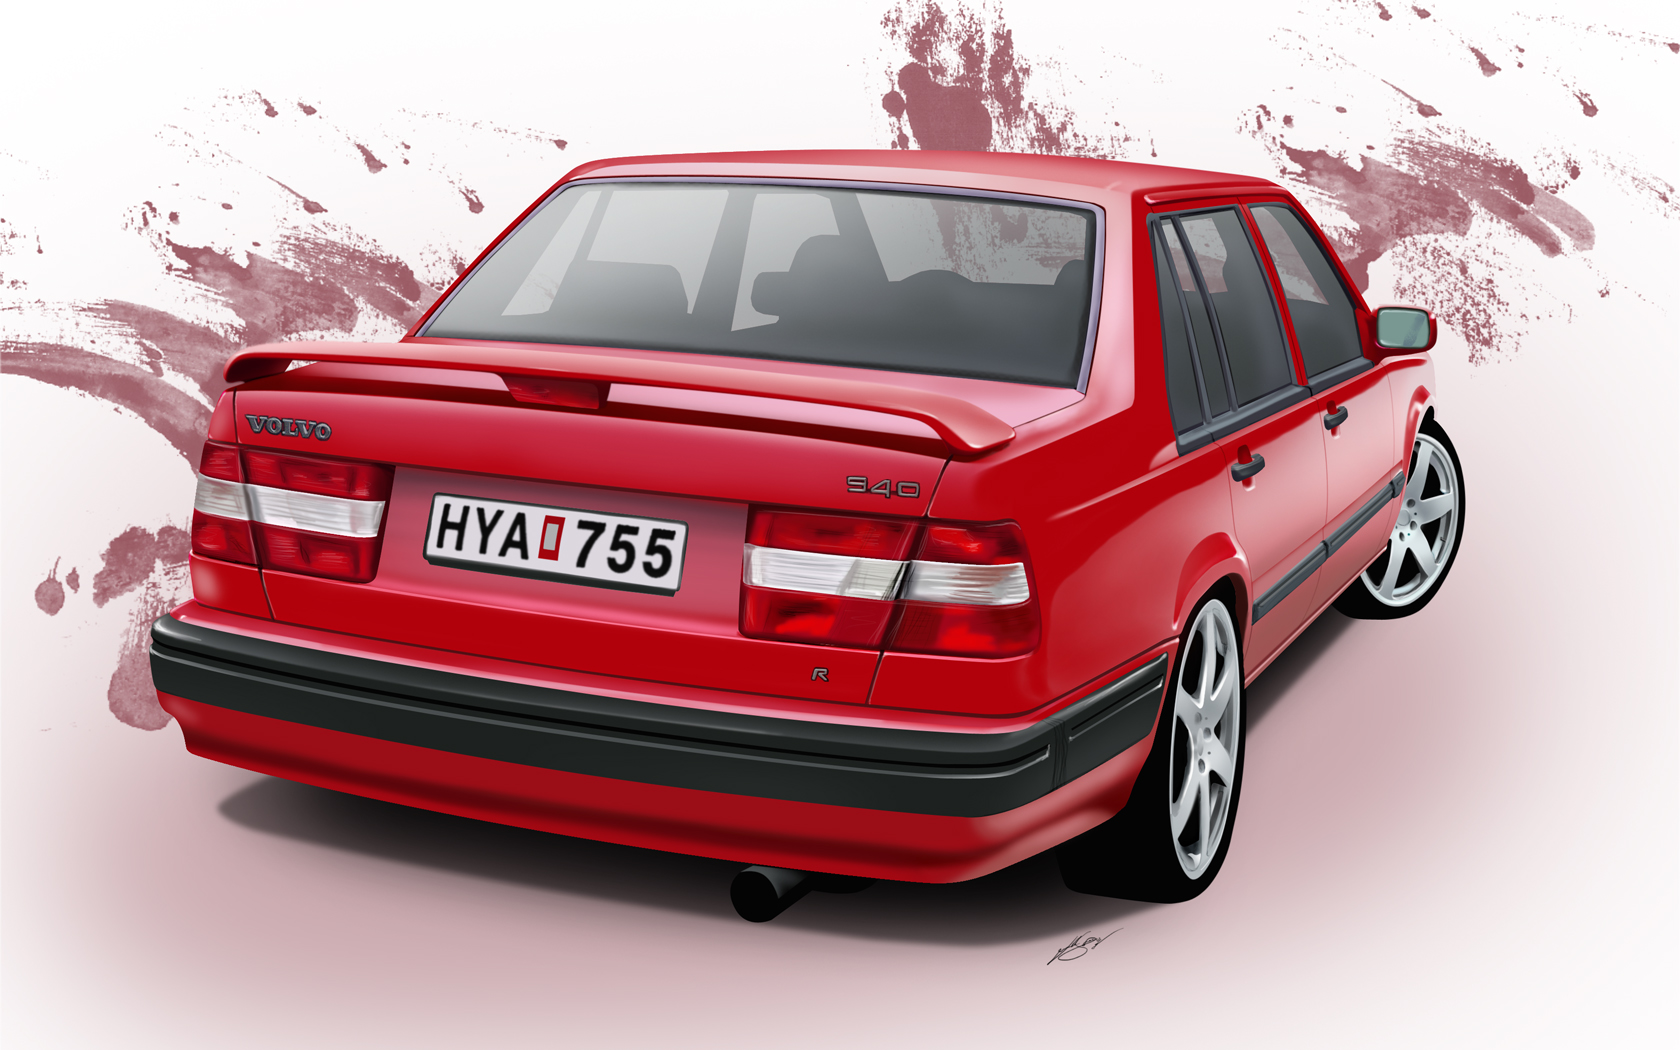 Volvo 940 Amazing Photo On Collection Of Cars B10m Wiring Diagram 4